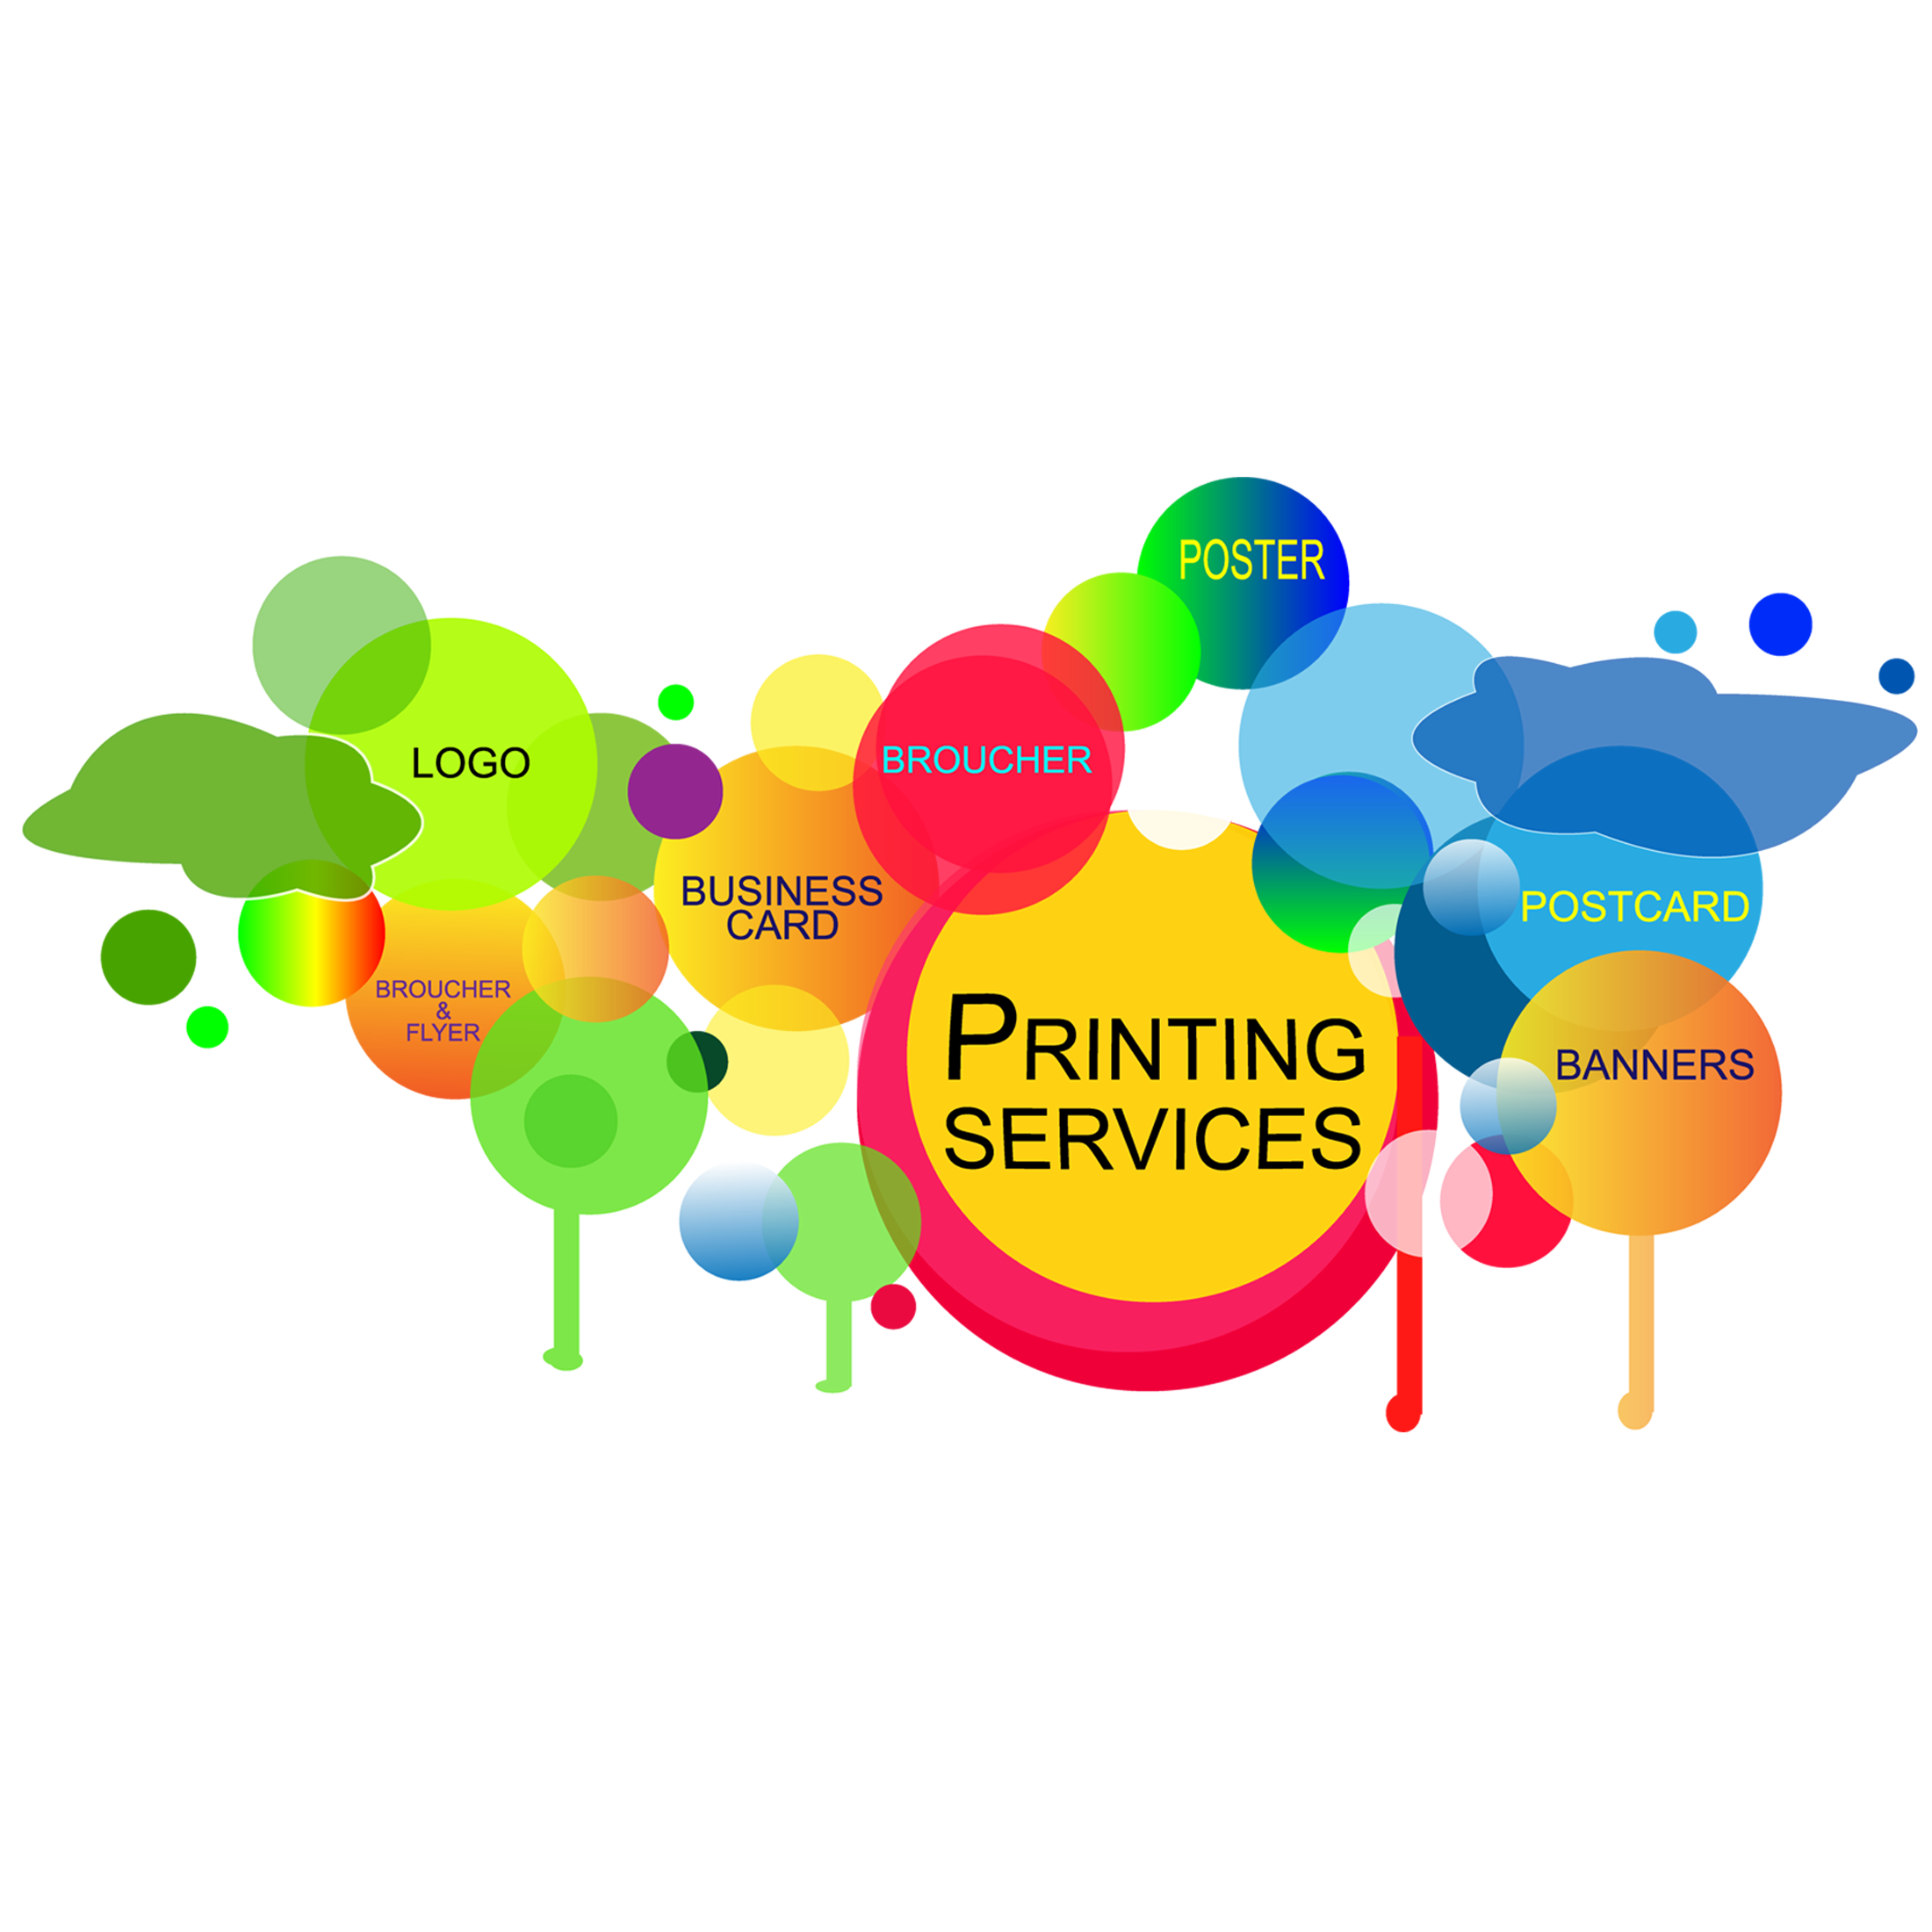 Printing press services sndriaddpml graphic design name cards printing press services sndriaddpml reheart Choice Image